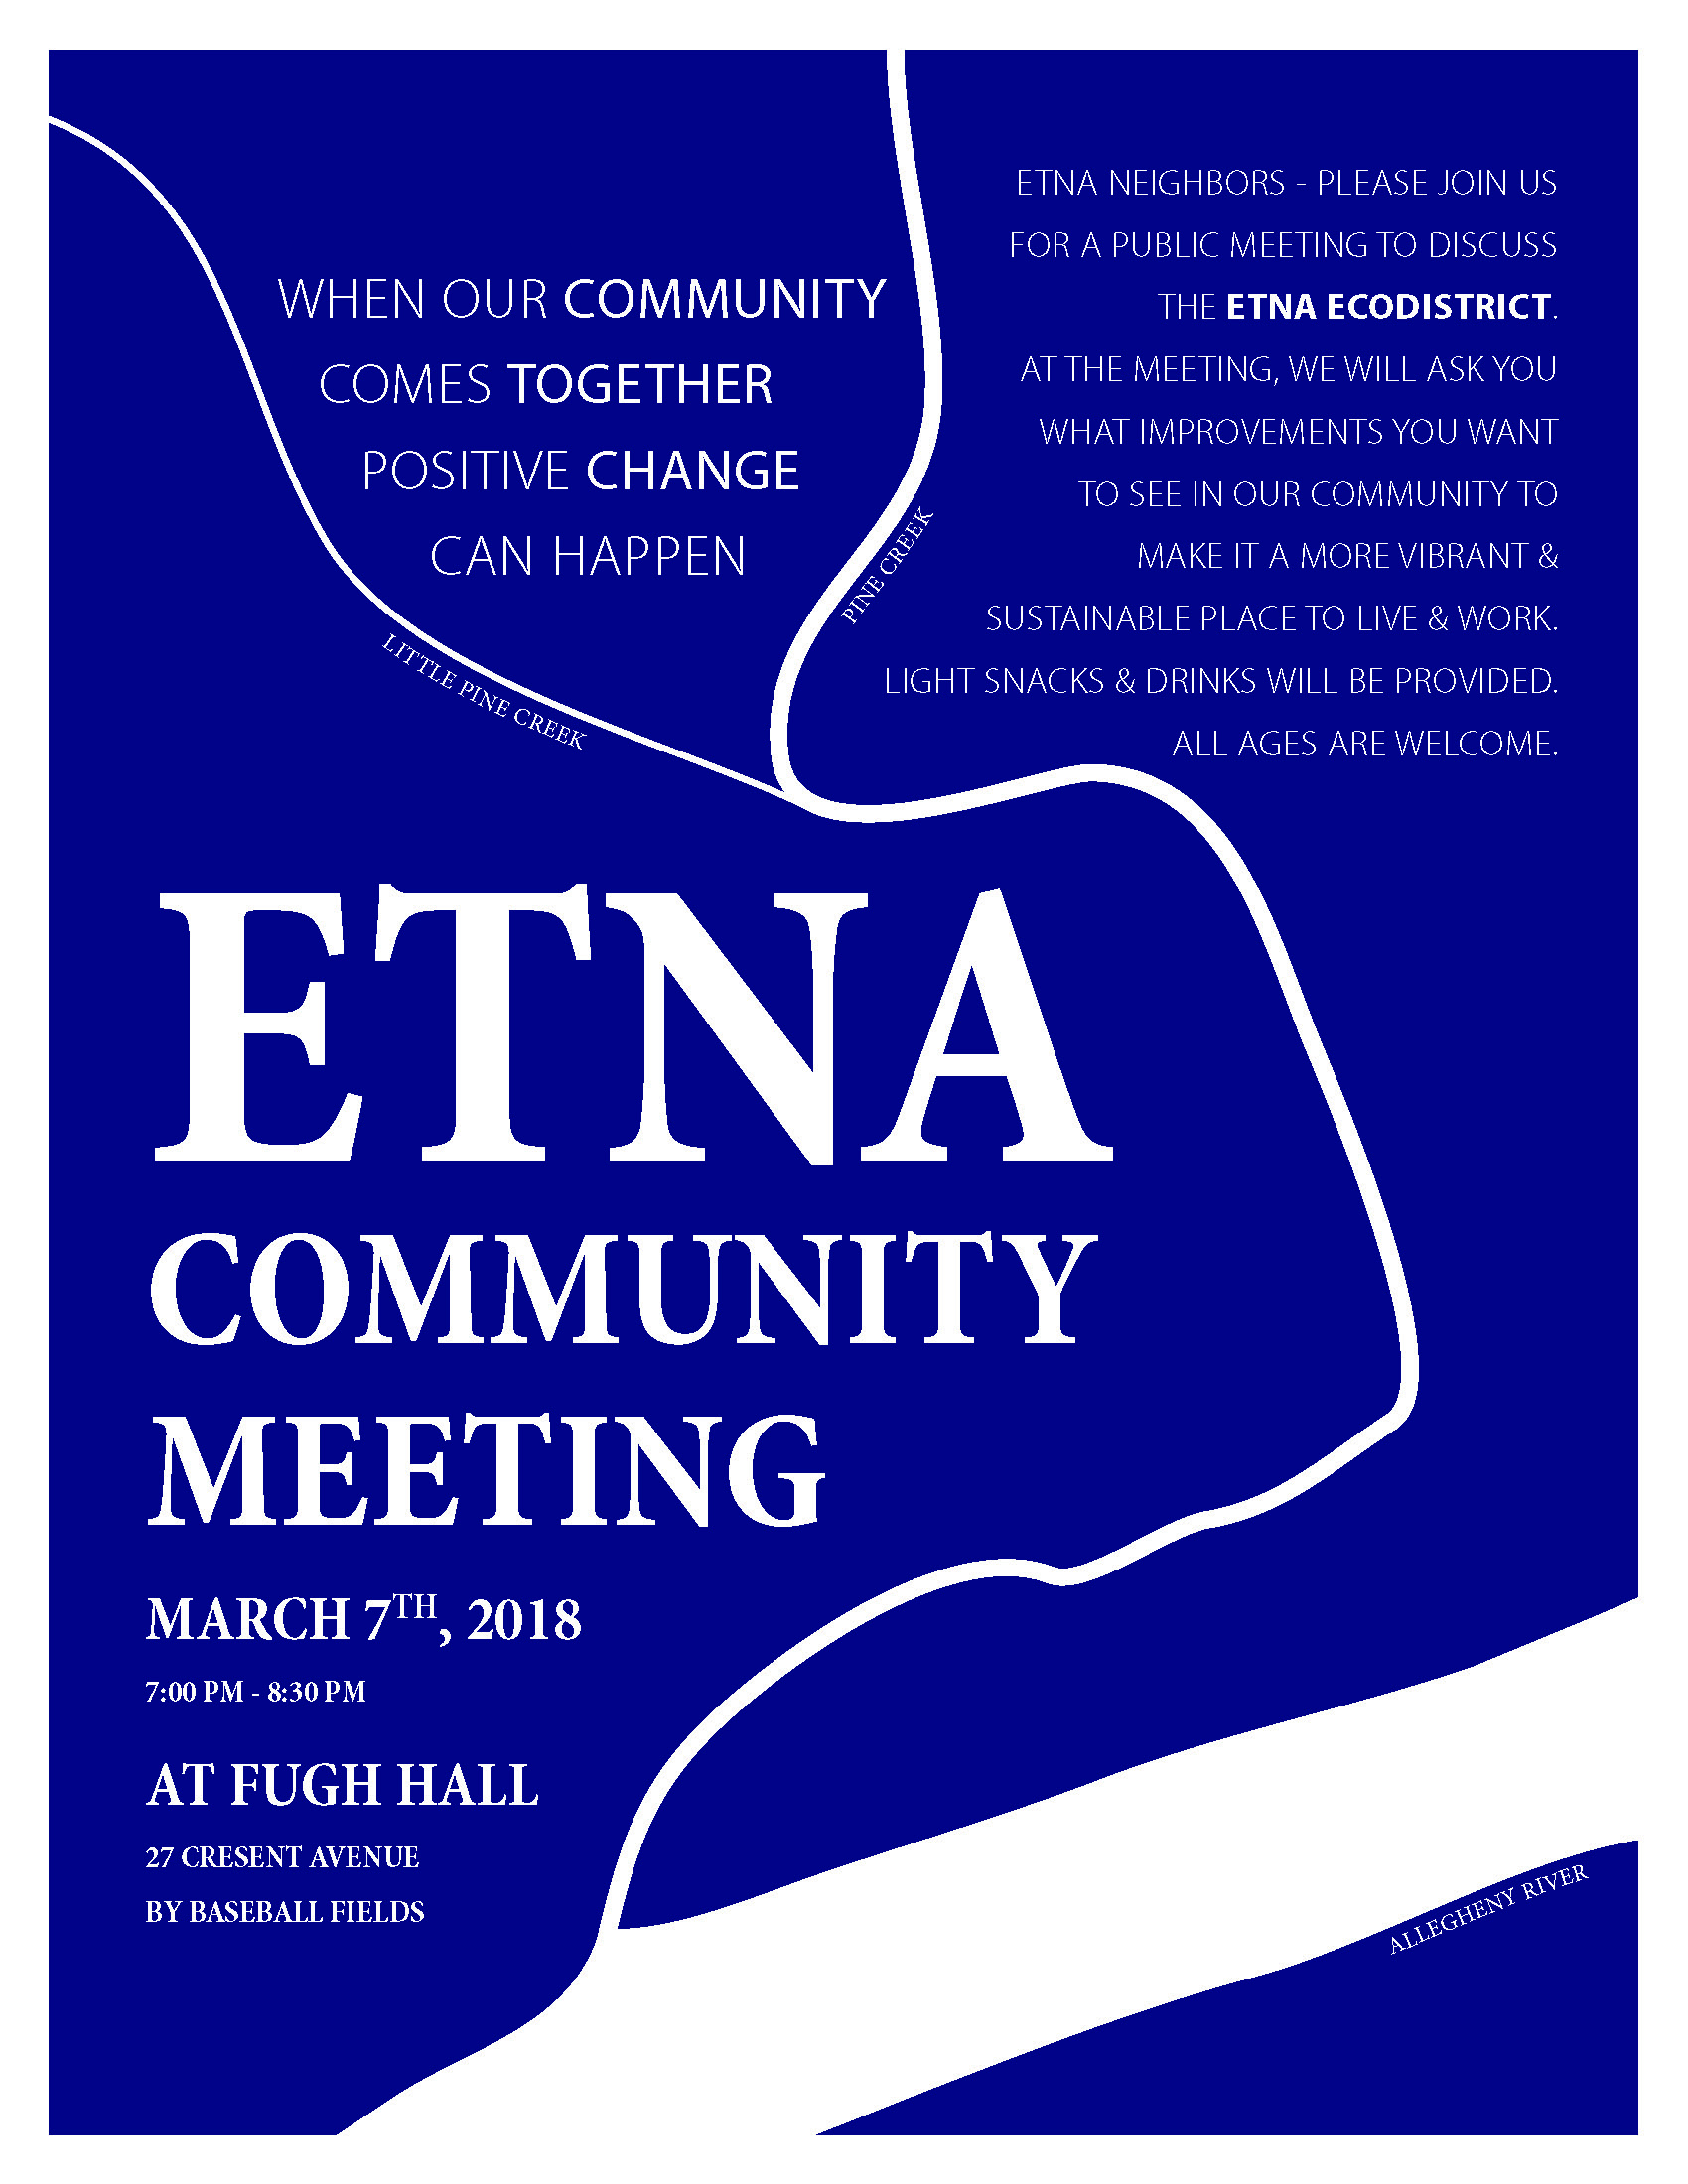 Etna EcoDistrict Community Meeting